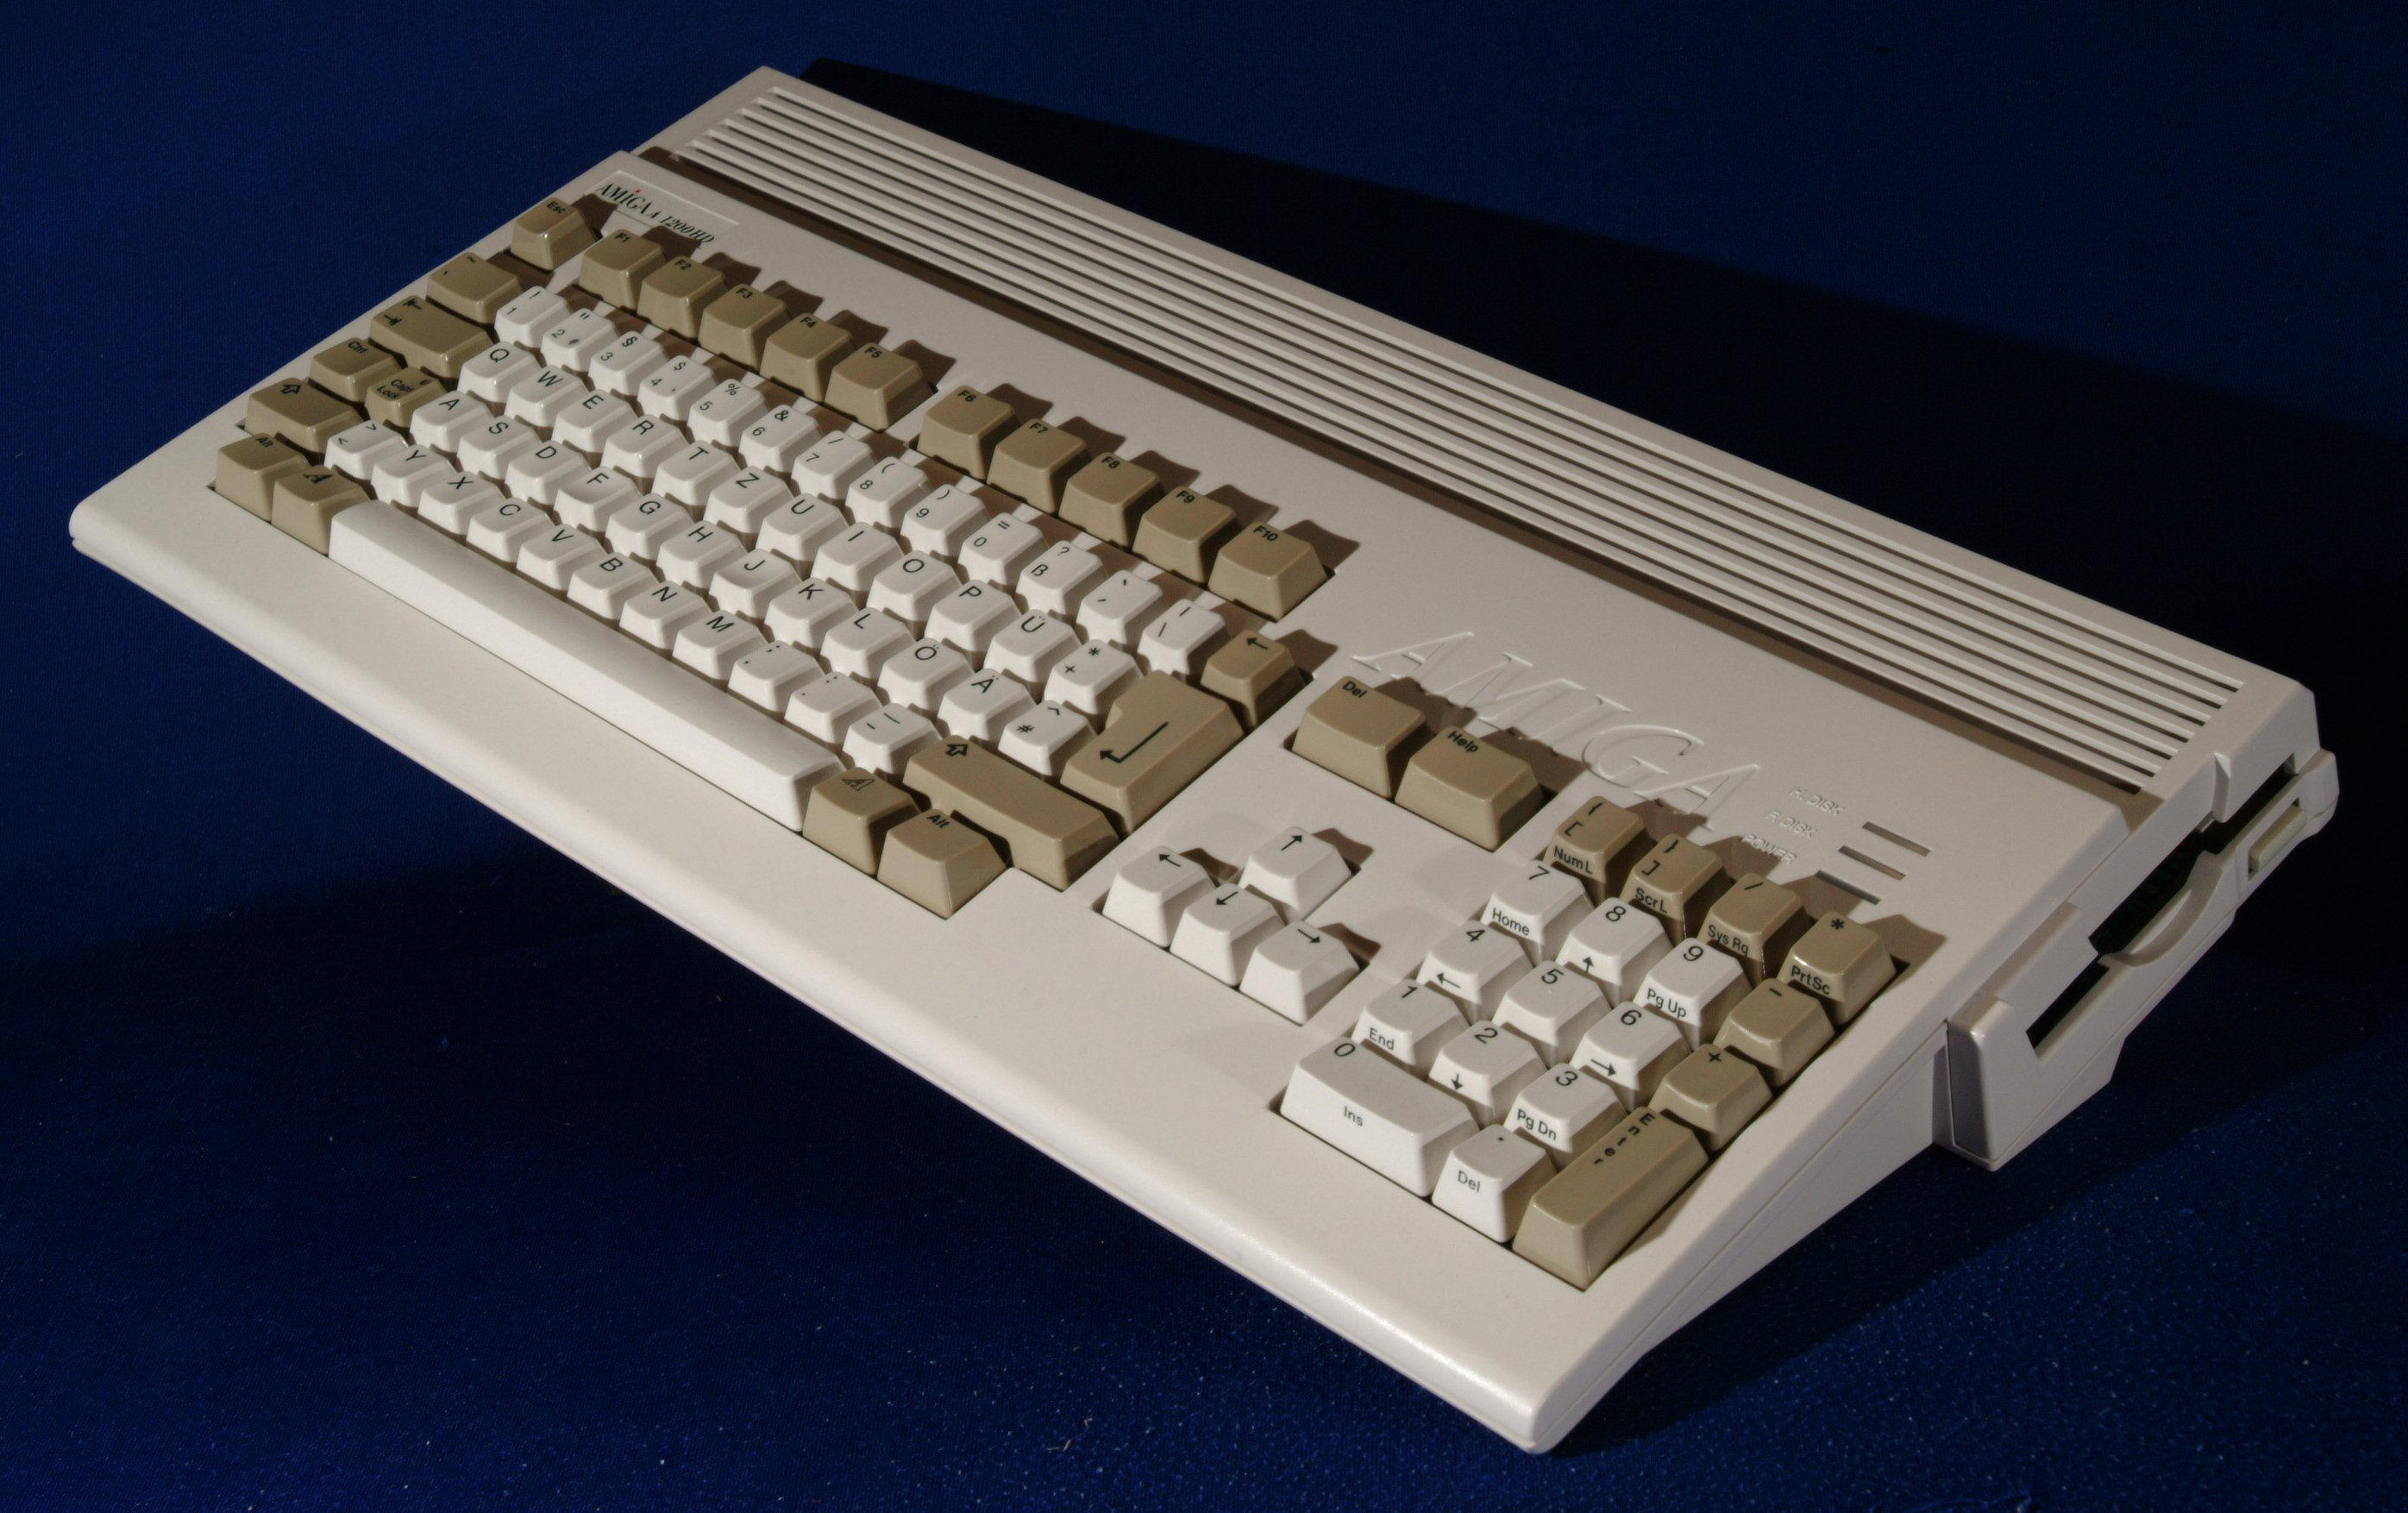 Big Book of Amiga Hardware - powered by AmigaResistance